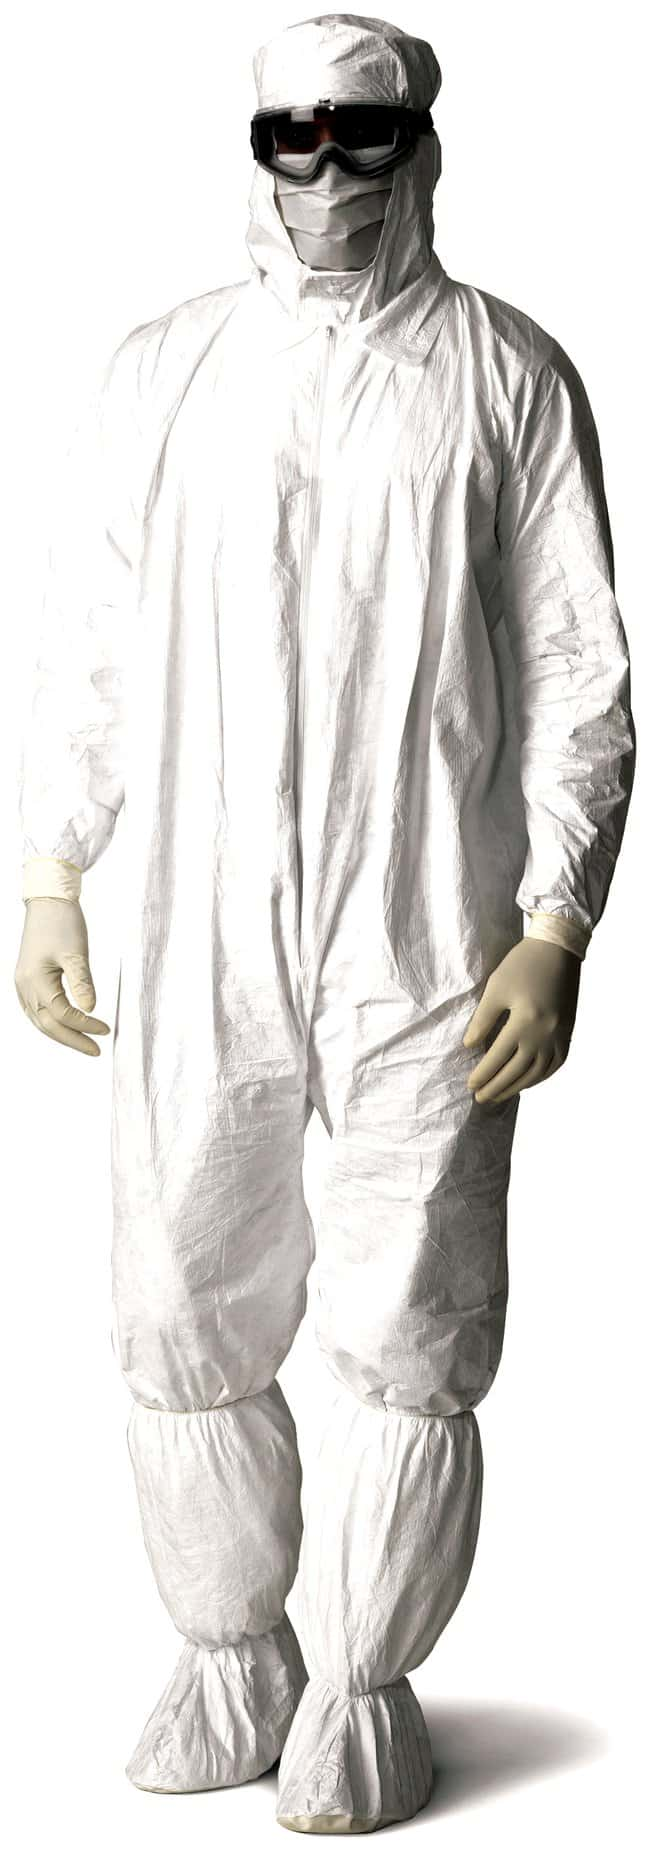 DuPont Tyvek IsoClean Series 253 Coveralls, Clean-Processed and Sterile